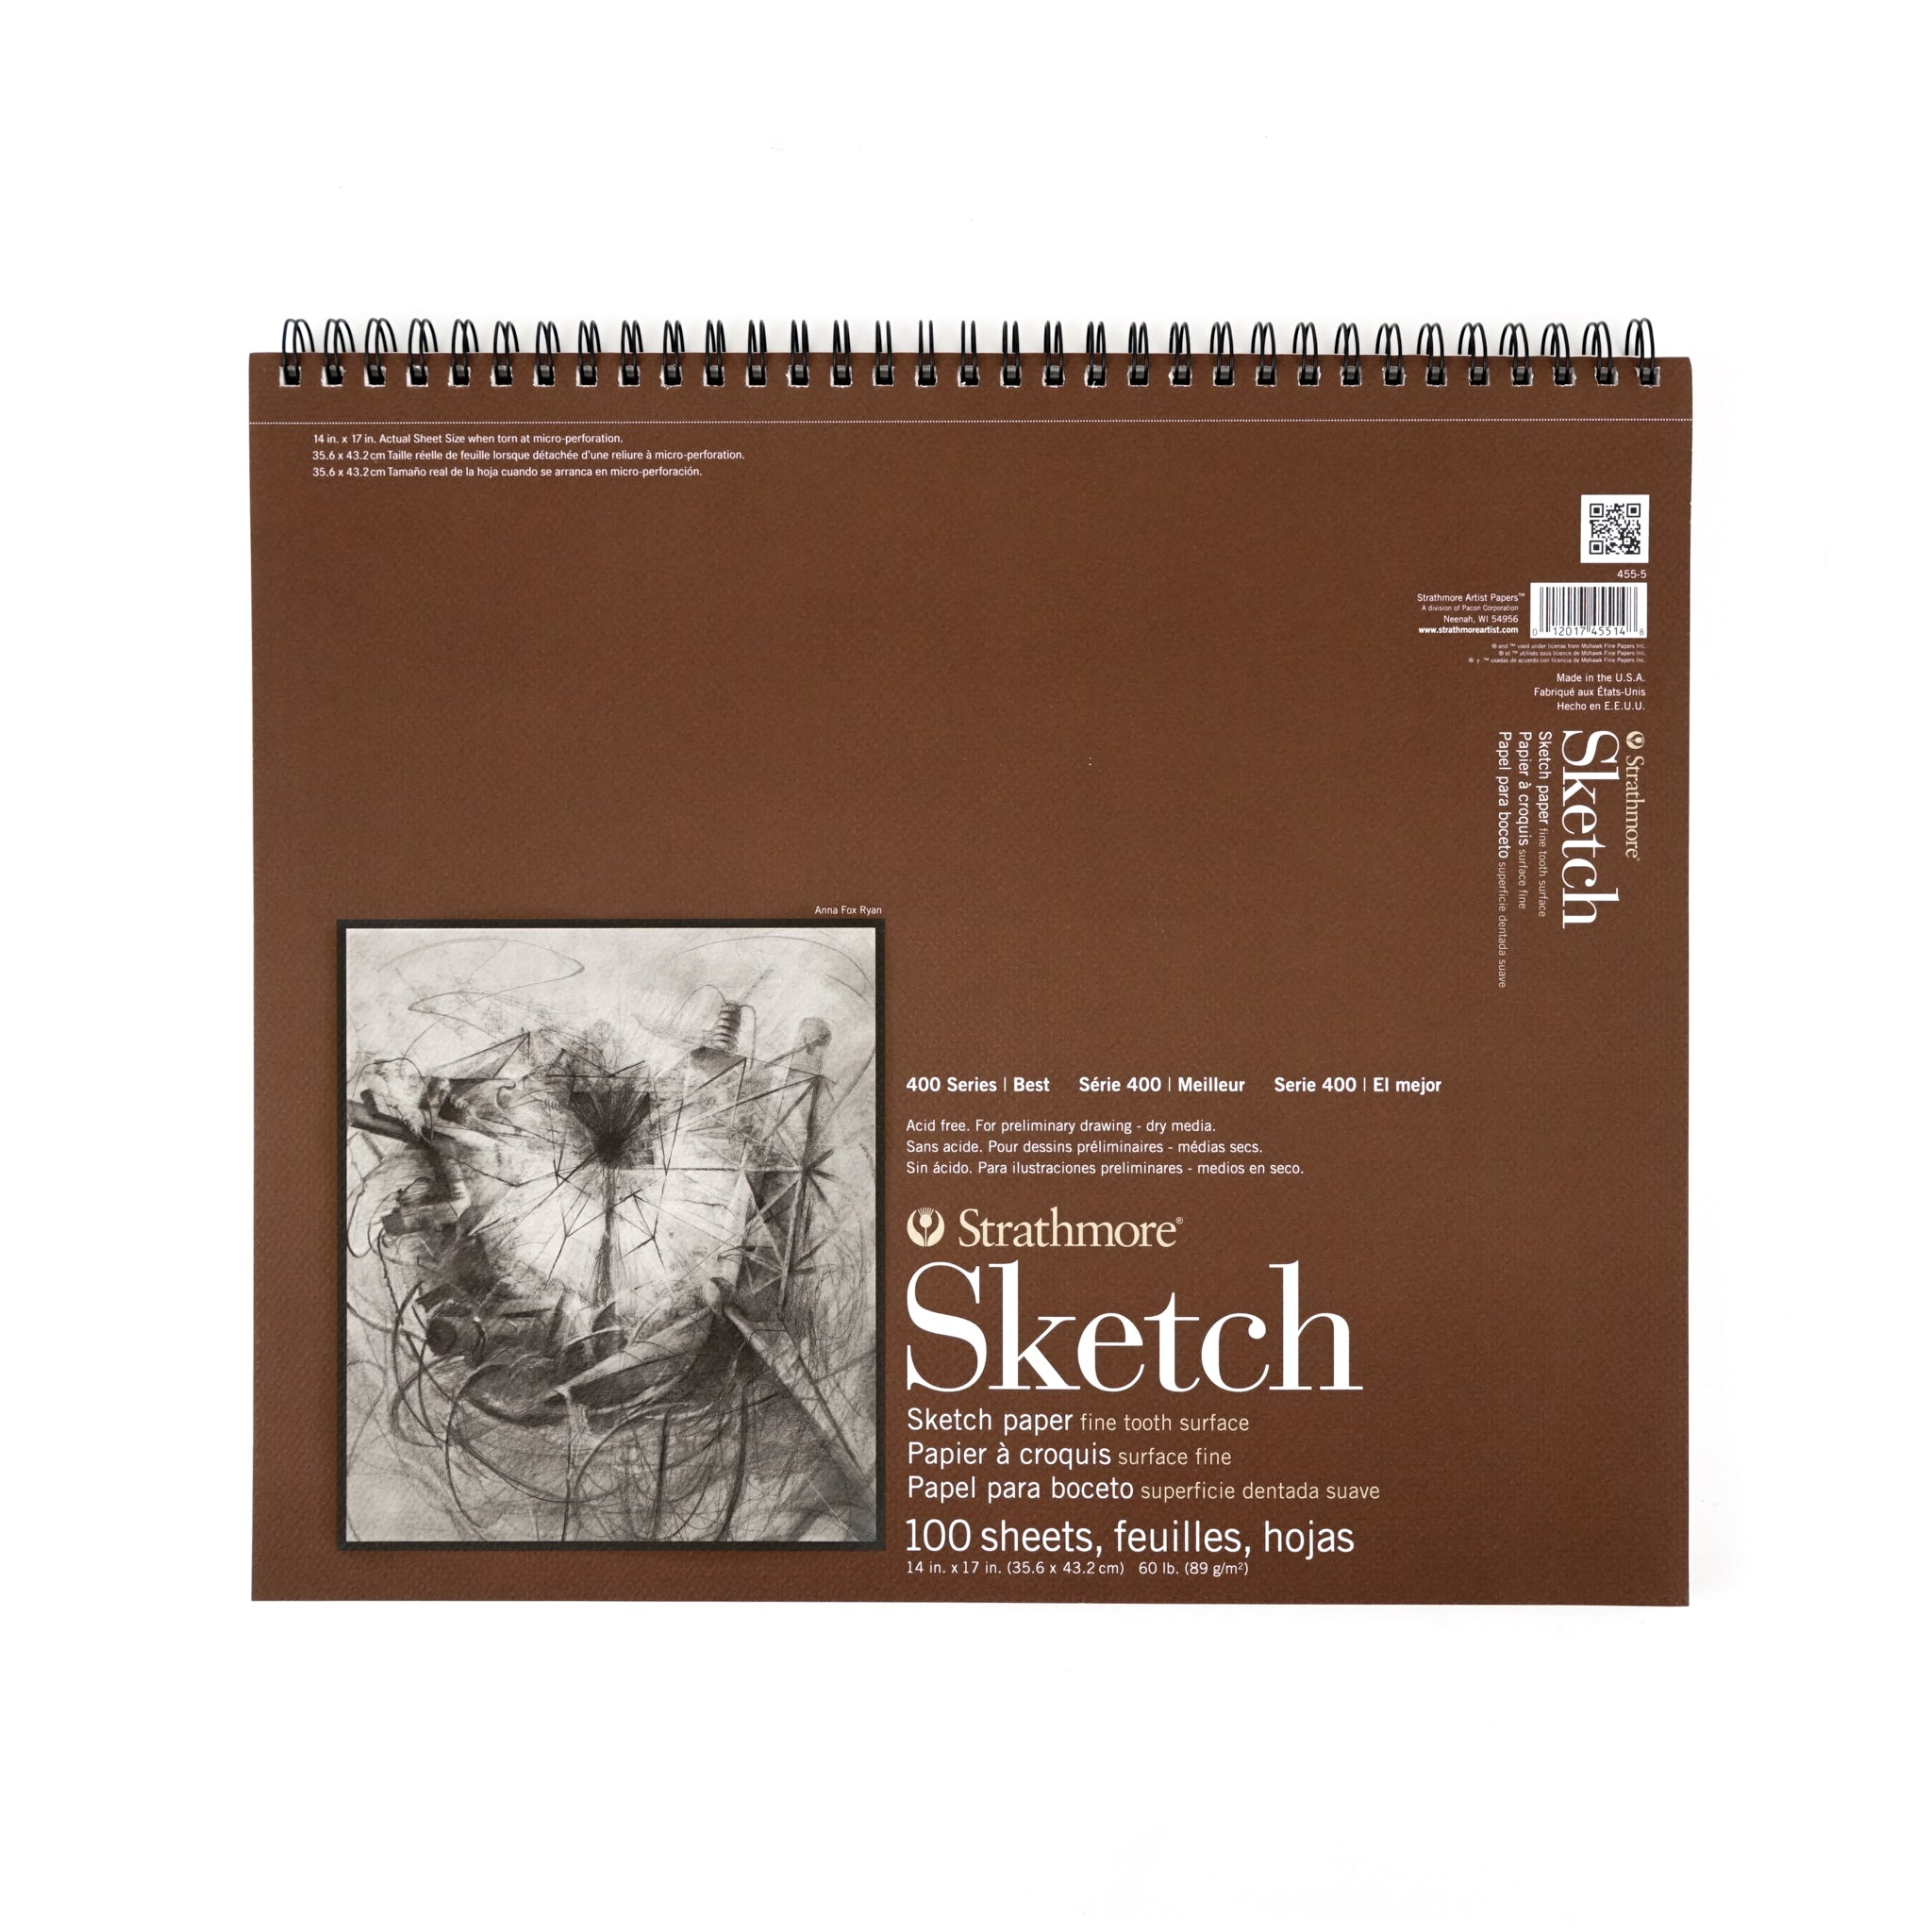 "Strathmore Sketch Paper Pad - 400 Series (Wire Bound Pad) - 100 sheets - 14"" x 17"" - 14 x 17 inches by Strathmore - K. A. Artist Shop"